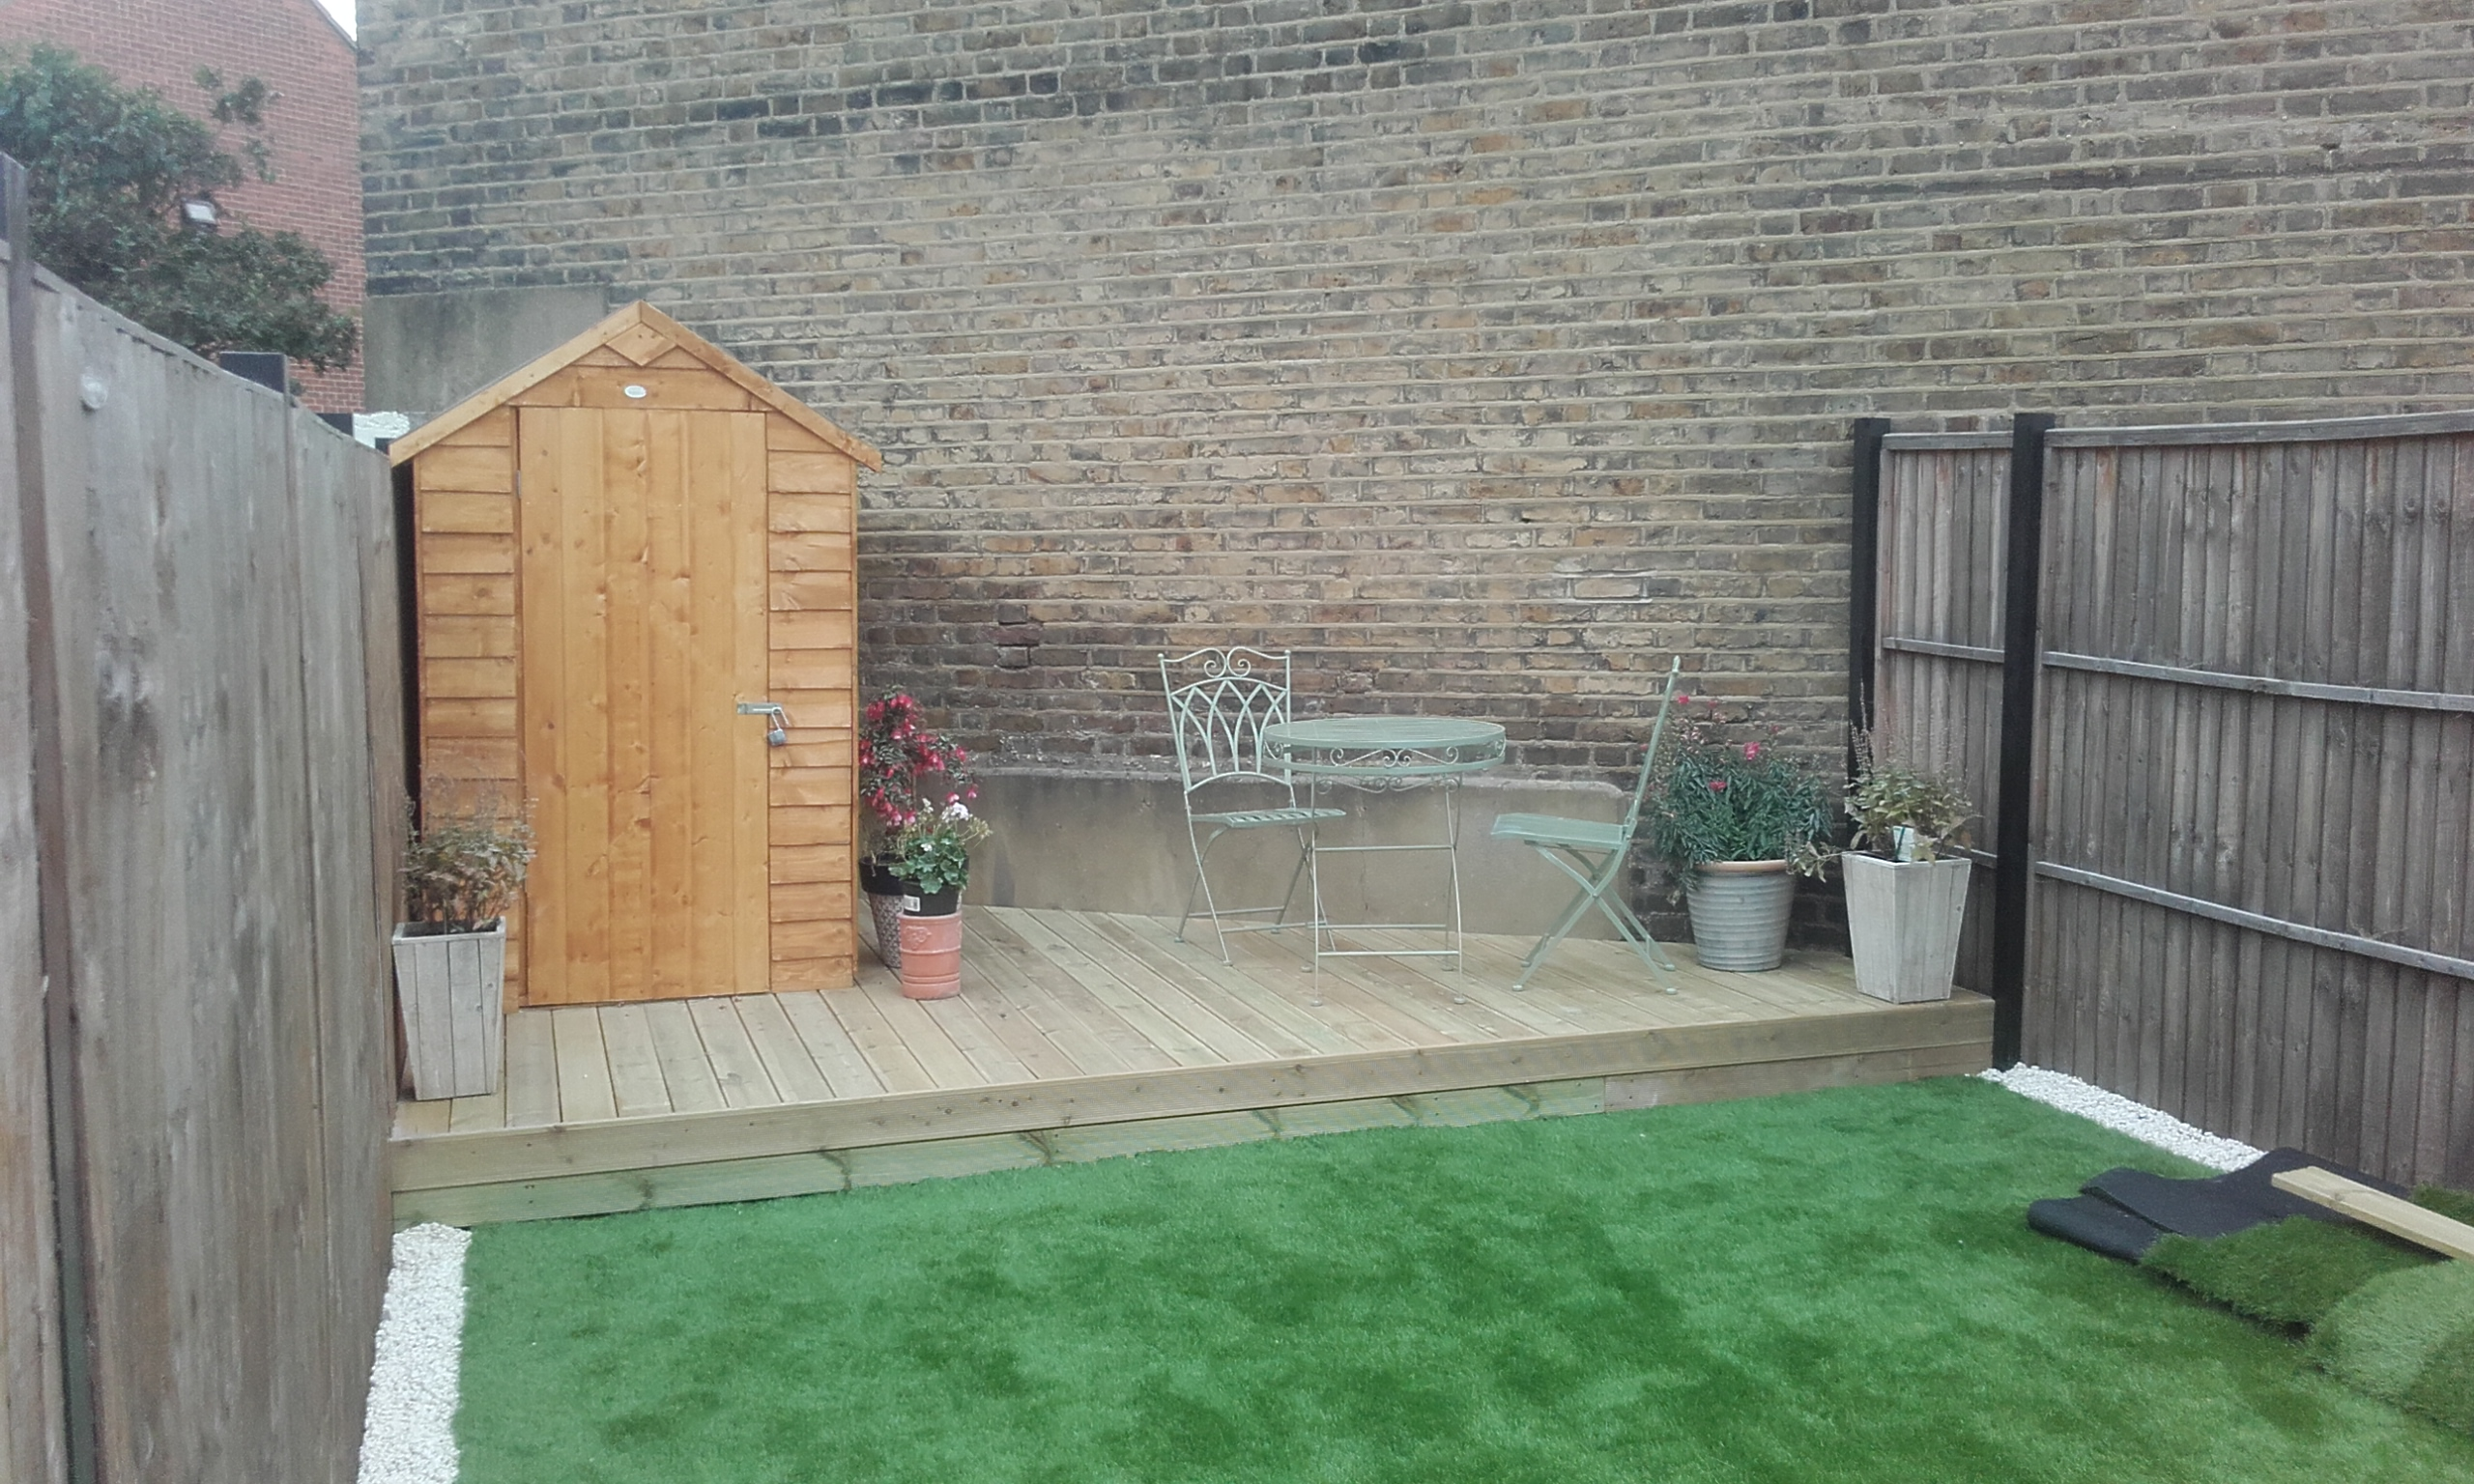 Decking and shed